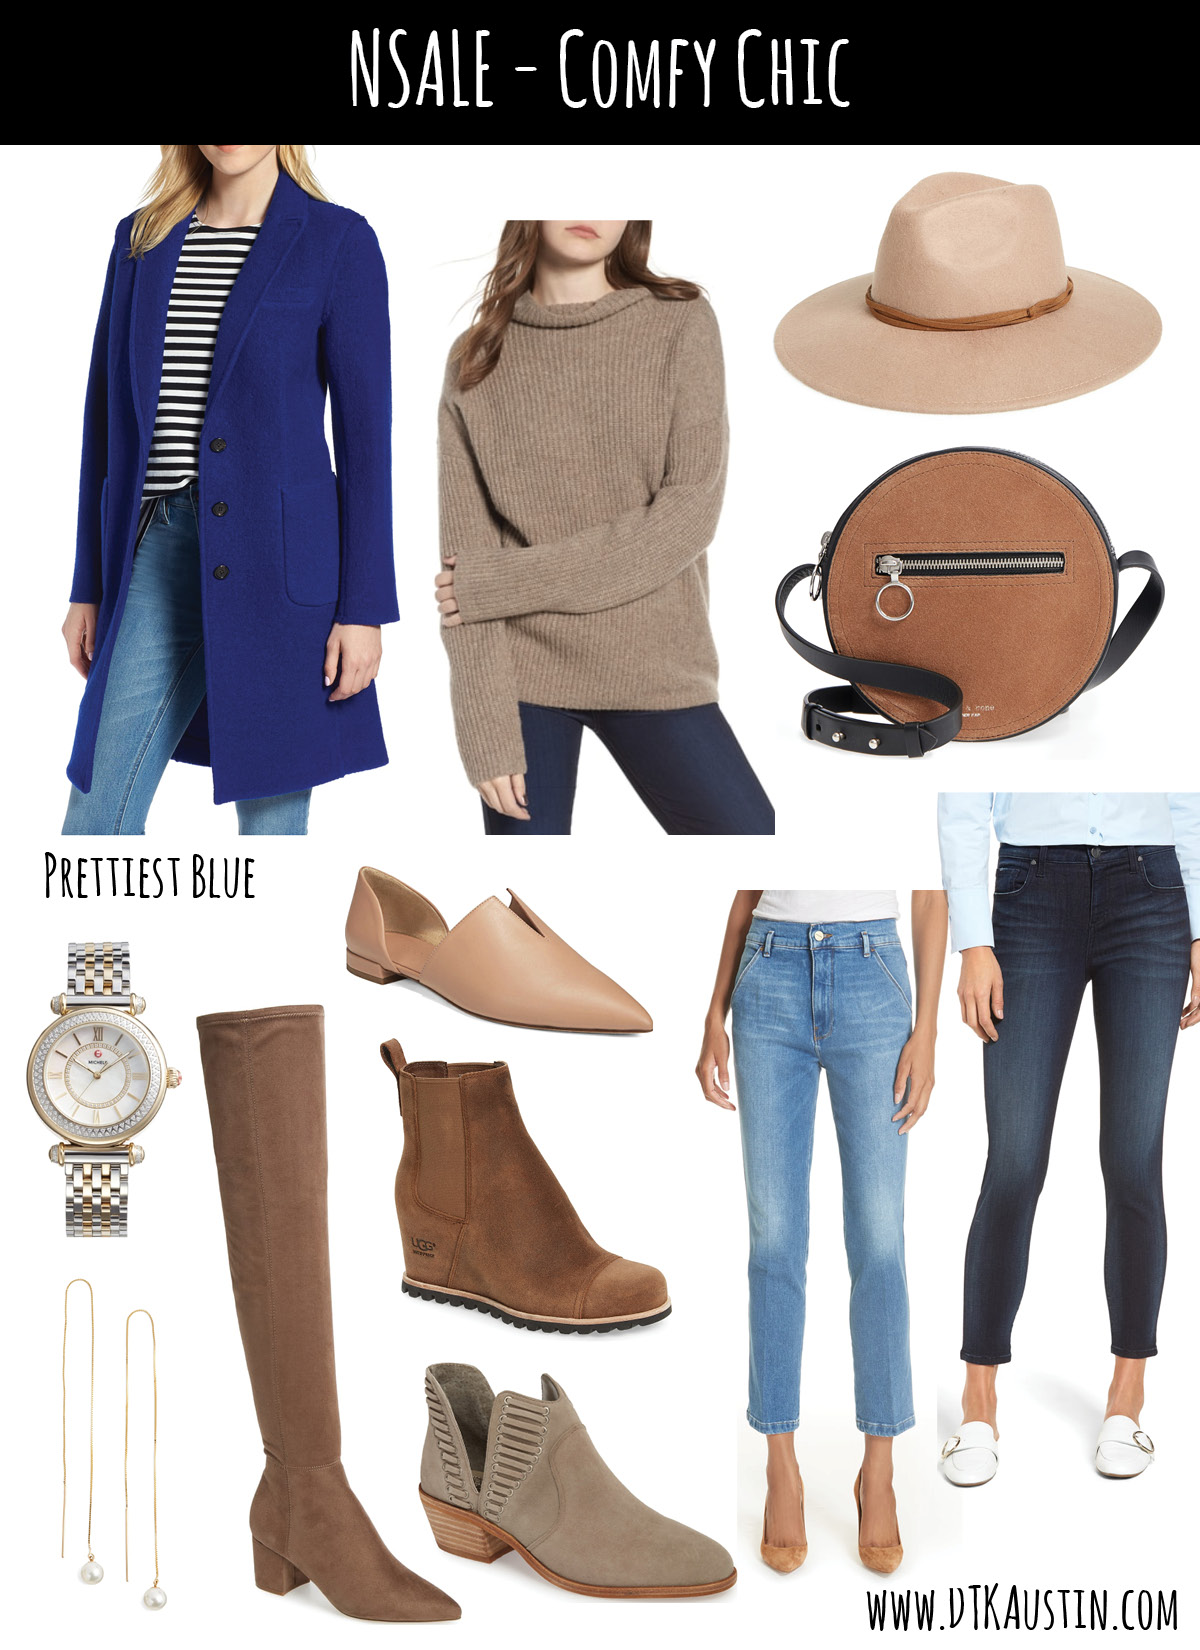 Tips on How to Shop the 2019 Nordstrom Anniversary SALE by popular Austin fashion blog, Dressed to Kill: collage image of Nordstrom anniversary sale JCREW Blue Coat, Trouve Sweater, Treasure & Bond Felt Hat, Rag & Bone Crossbody Michele Watch, Vince Leather Flat,Frame Straight Jeans, KUT Skinny Jeans Pearl Earrings, Steve Madden OTK Boots, UGG Wedge Booties, and Vince Camuto Booties.